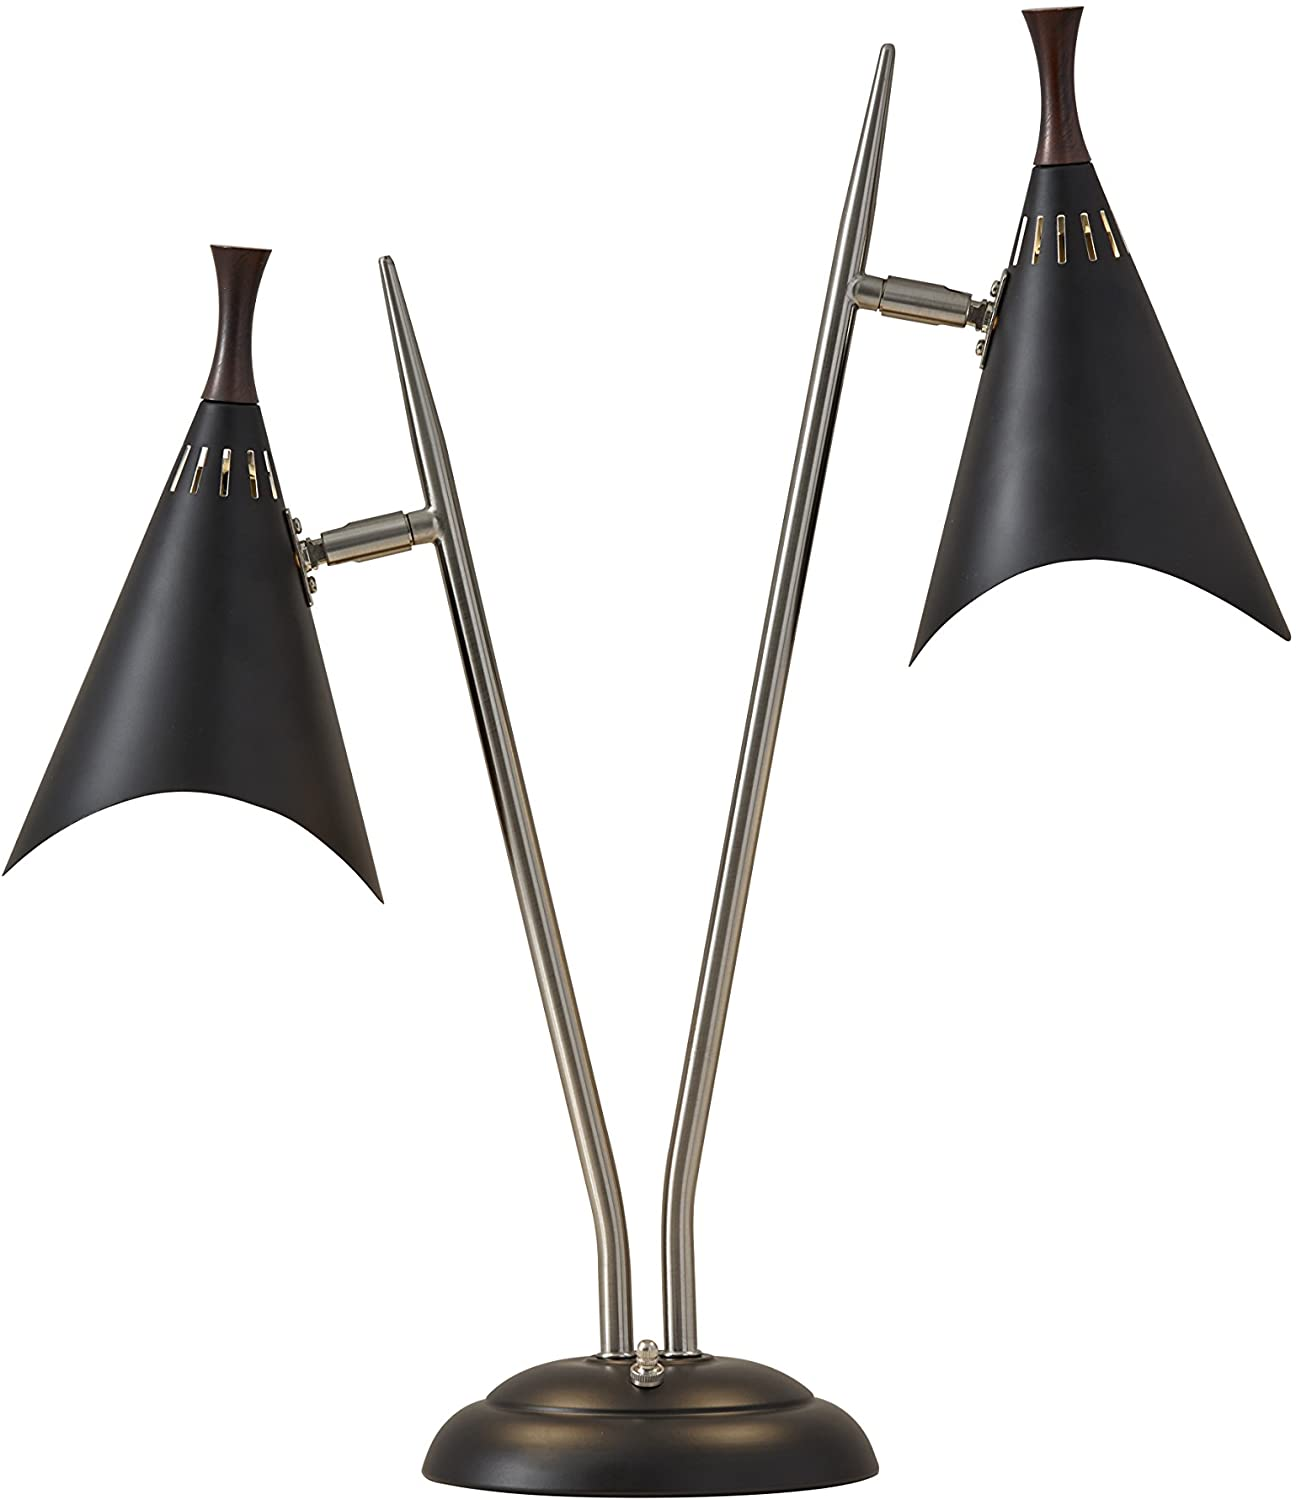 Adesso 3235-01 Draper Desk Lamp, 22 in, 2 x 60W Incandescent/ 2 x 13W CFL, Brushed Steel/Black Painted w/Wood Accent, 1 Table Lamp